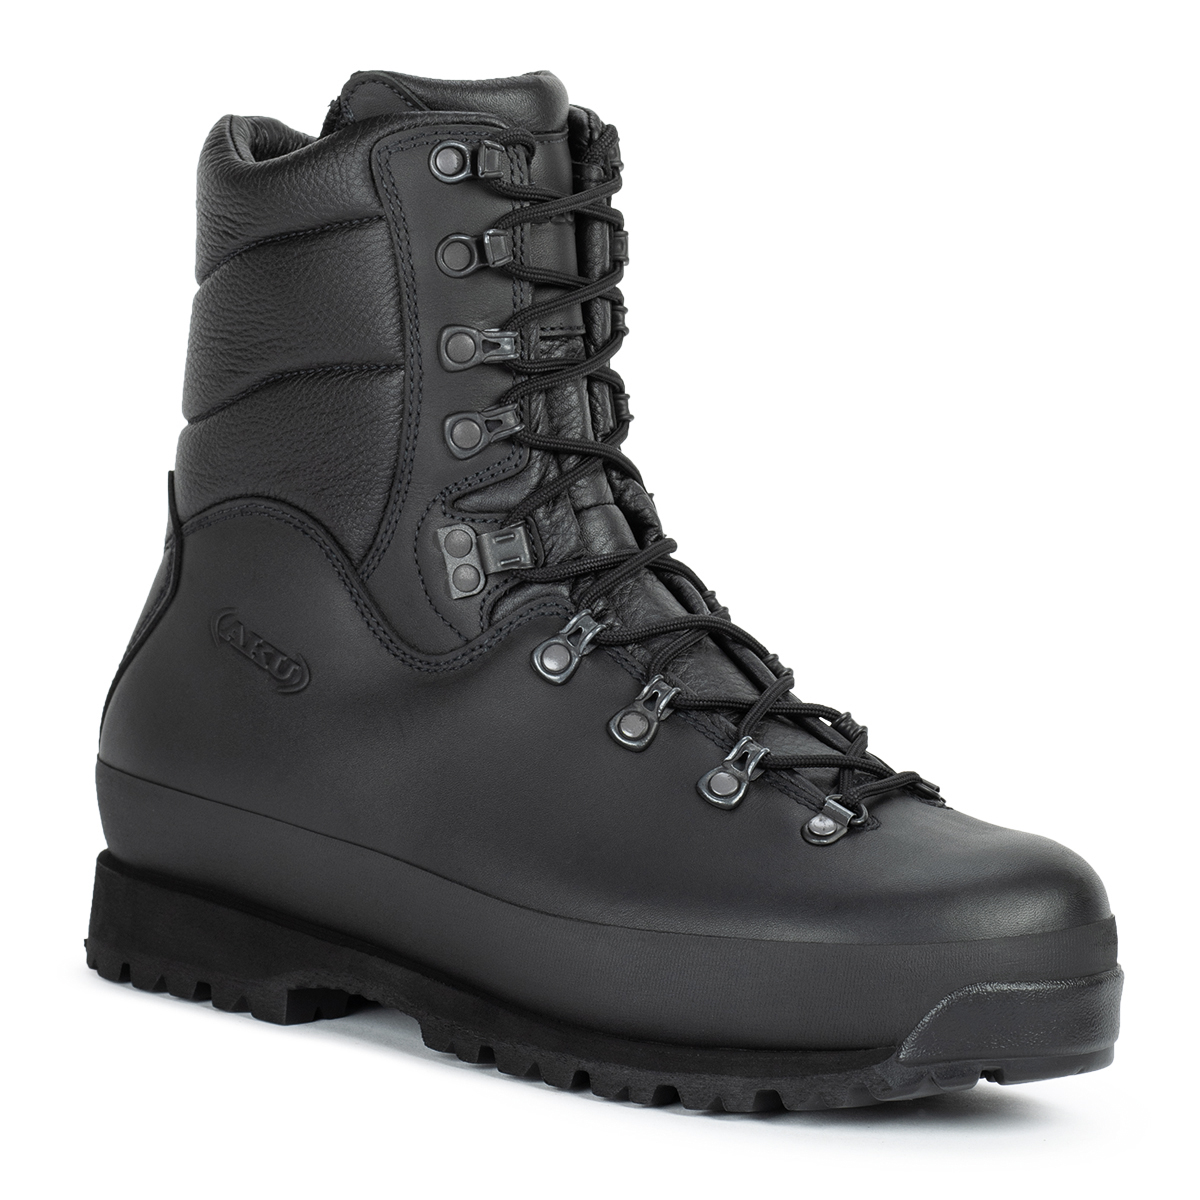 ca8e9bf20e40e Combat footwear currently used by the Danish army. Particularly suited to  cold climates thanks to its Gore-Tex® Insulated Comfort membrane.